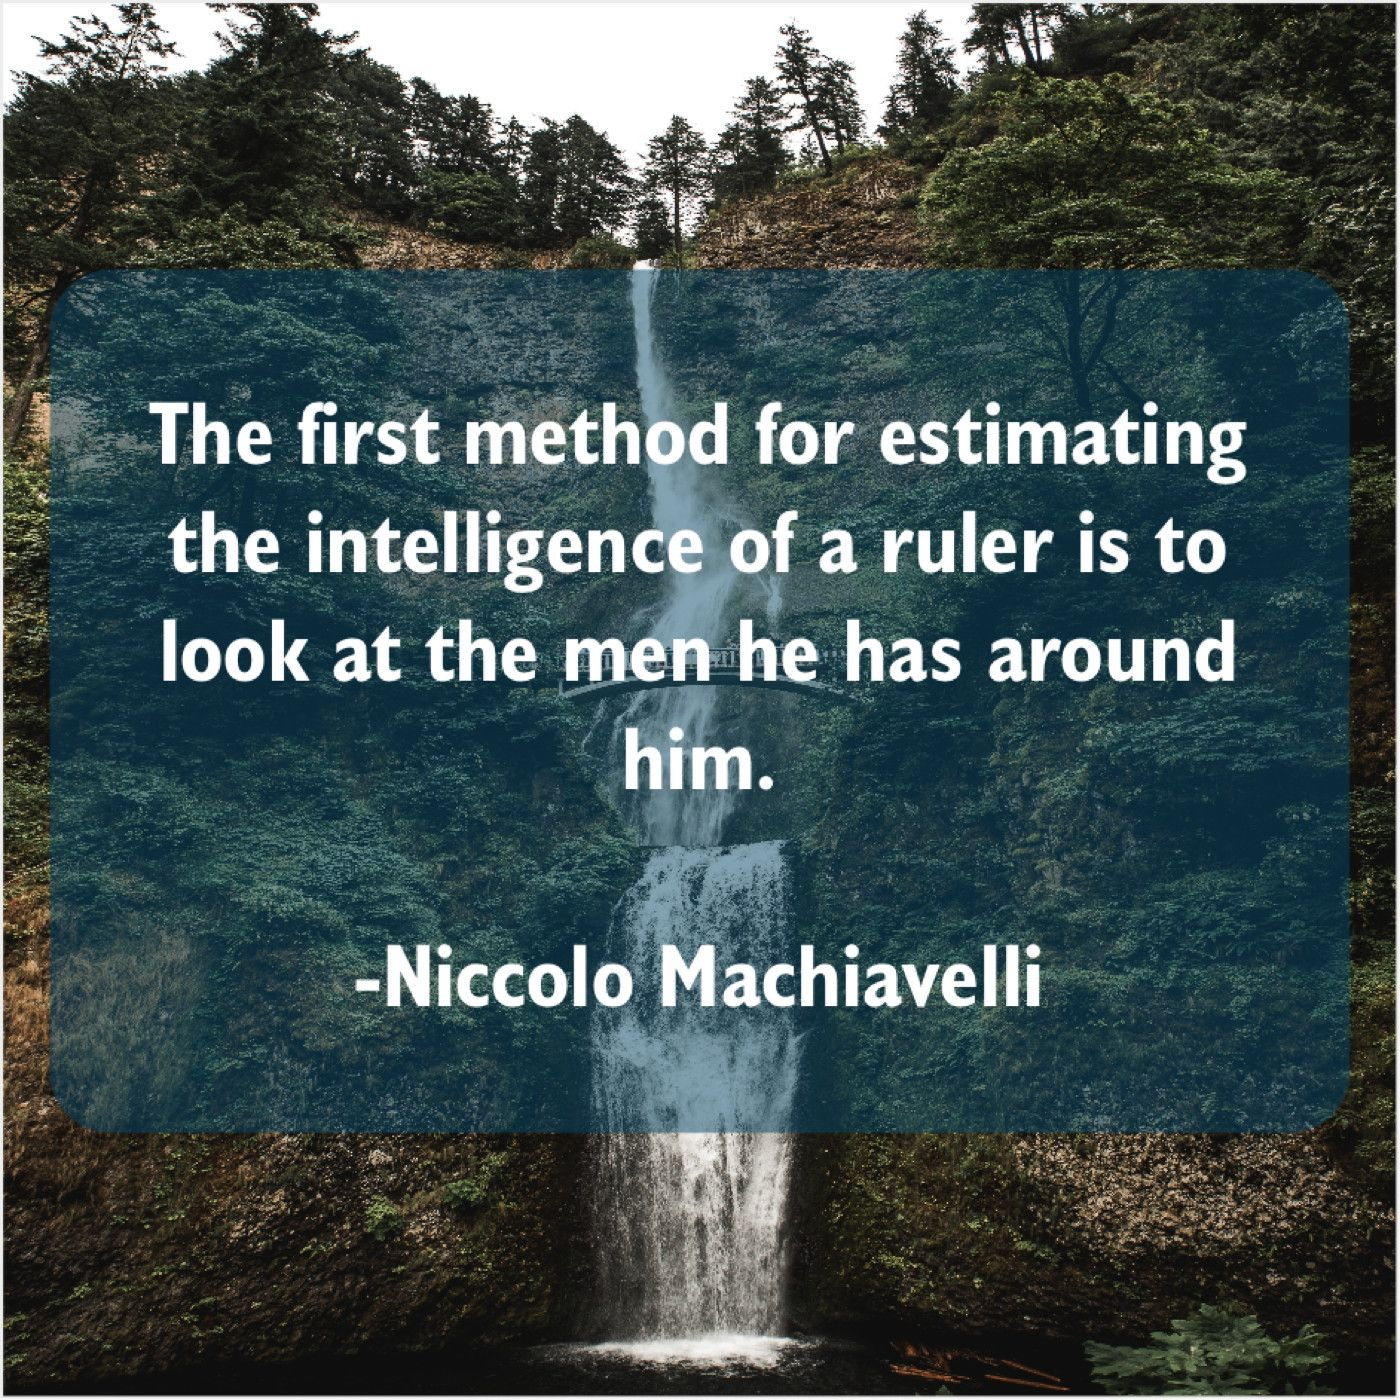 Niccolo Machiavelli: Niccolo Machiavelli  The first method for estimating